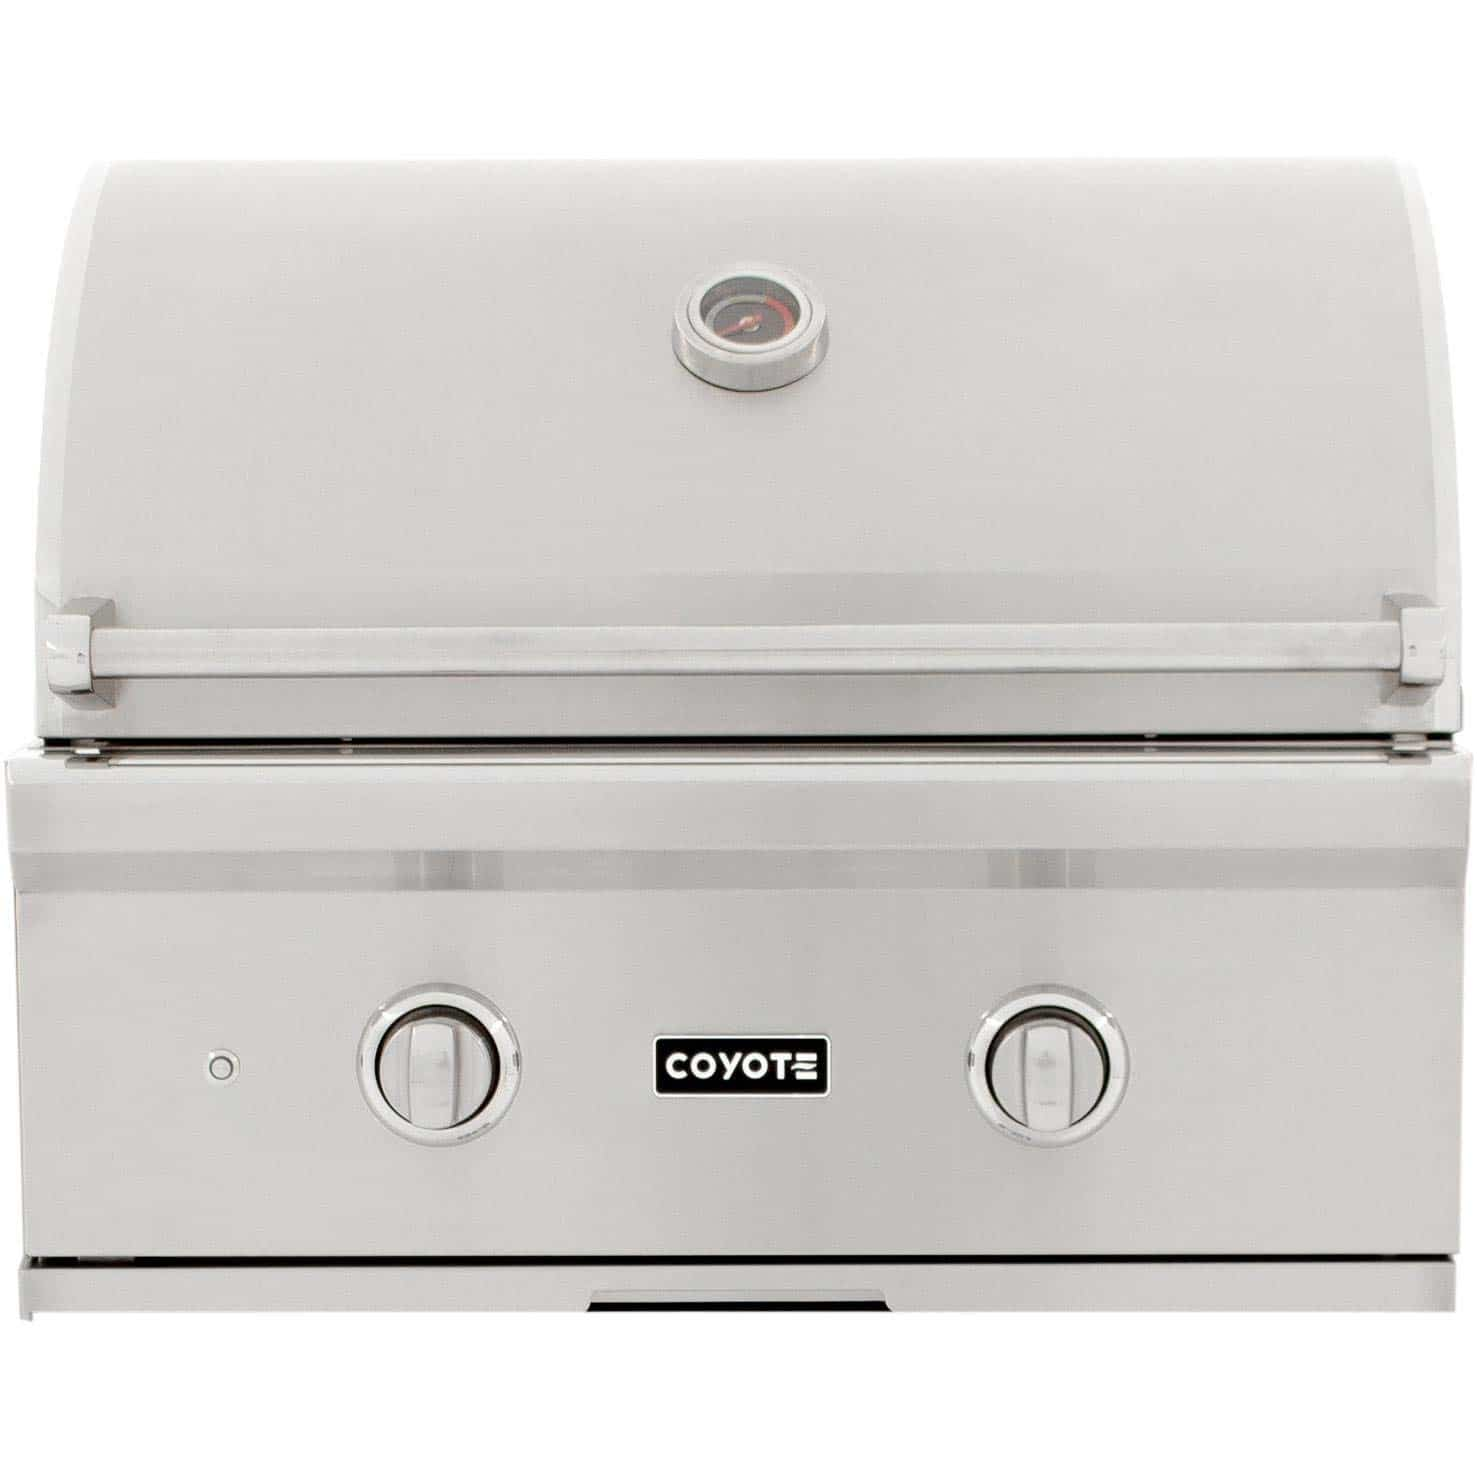 Coyote C Series Grills 28-Inch Gas Built In